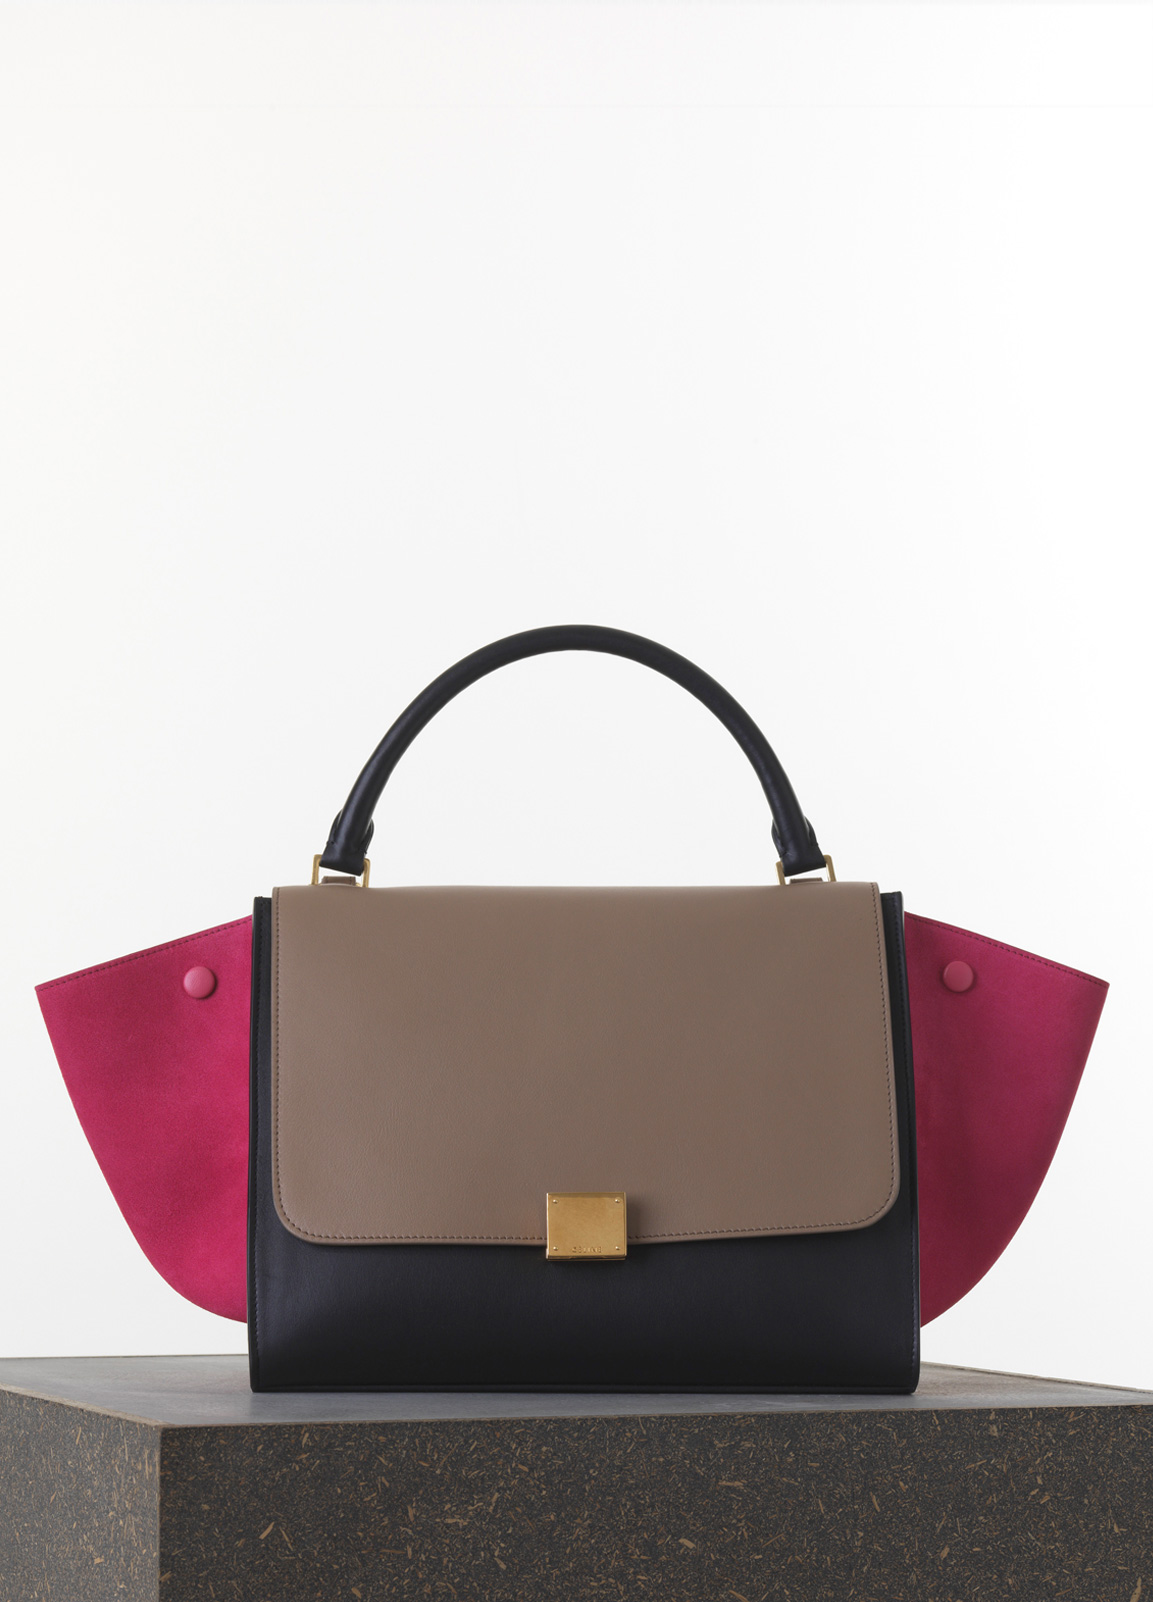 Celine-PinkTaupeBlack-Smooth-Calfskin-Trapeze-Medium-Bag